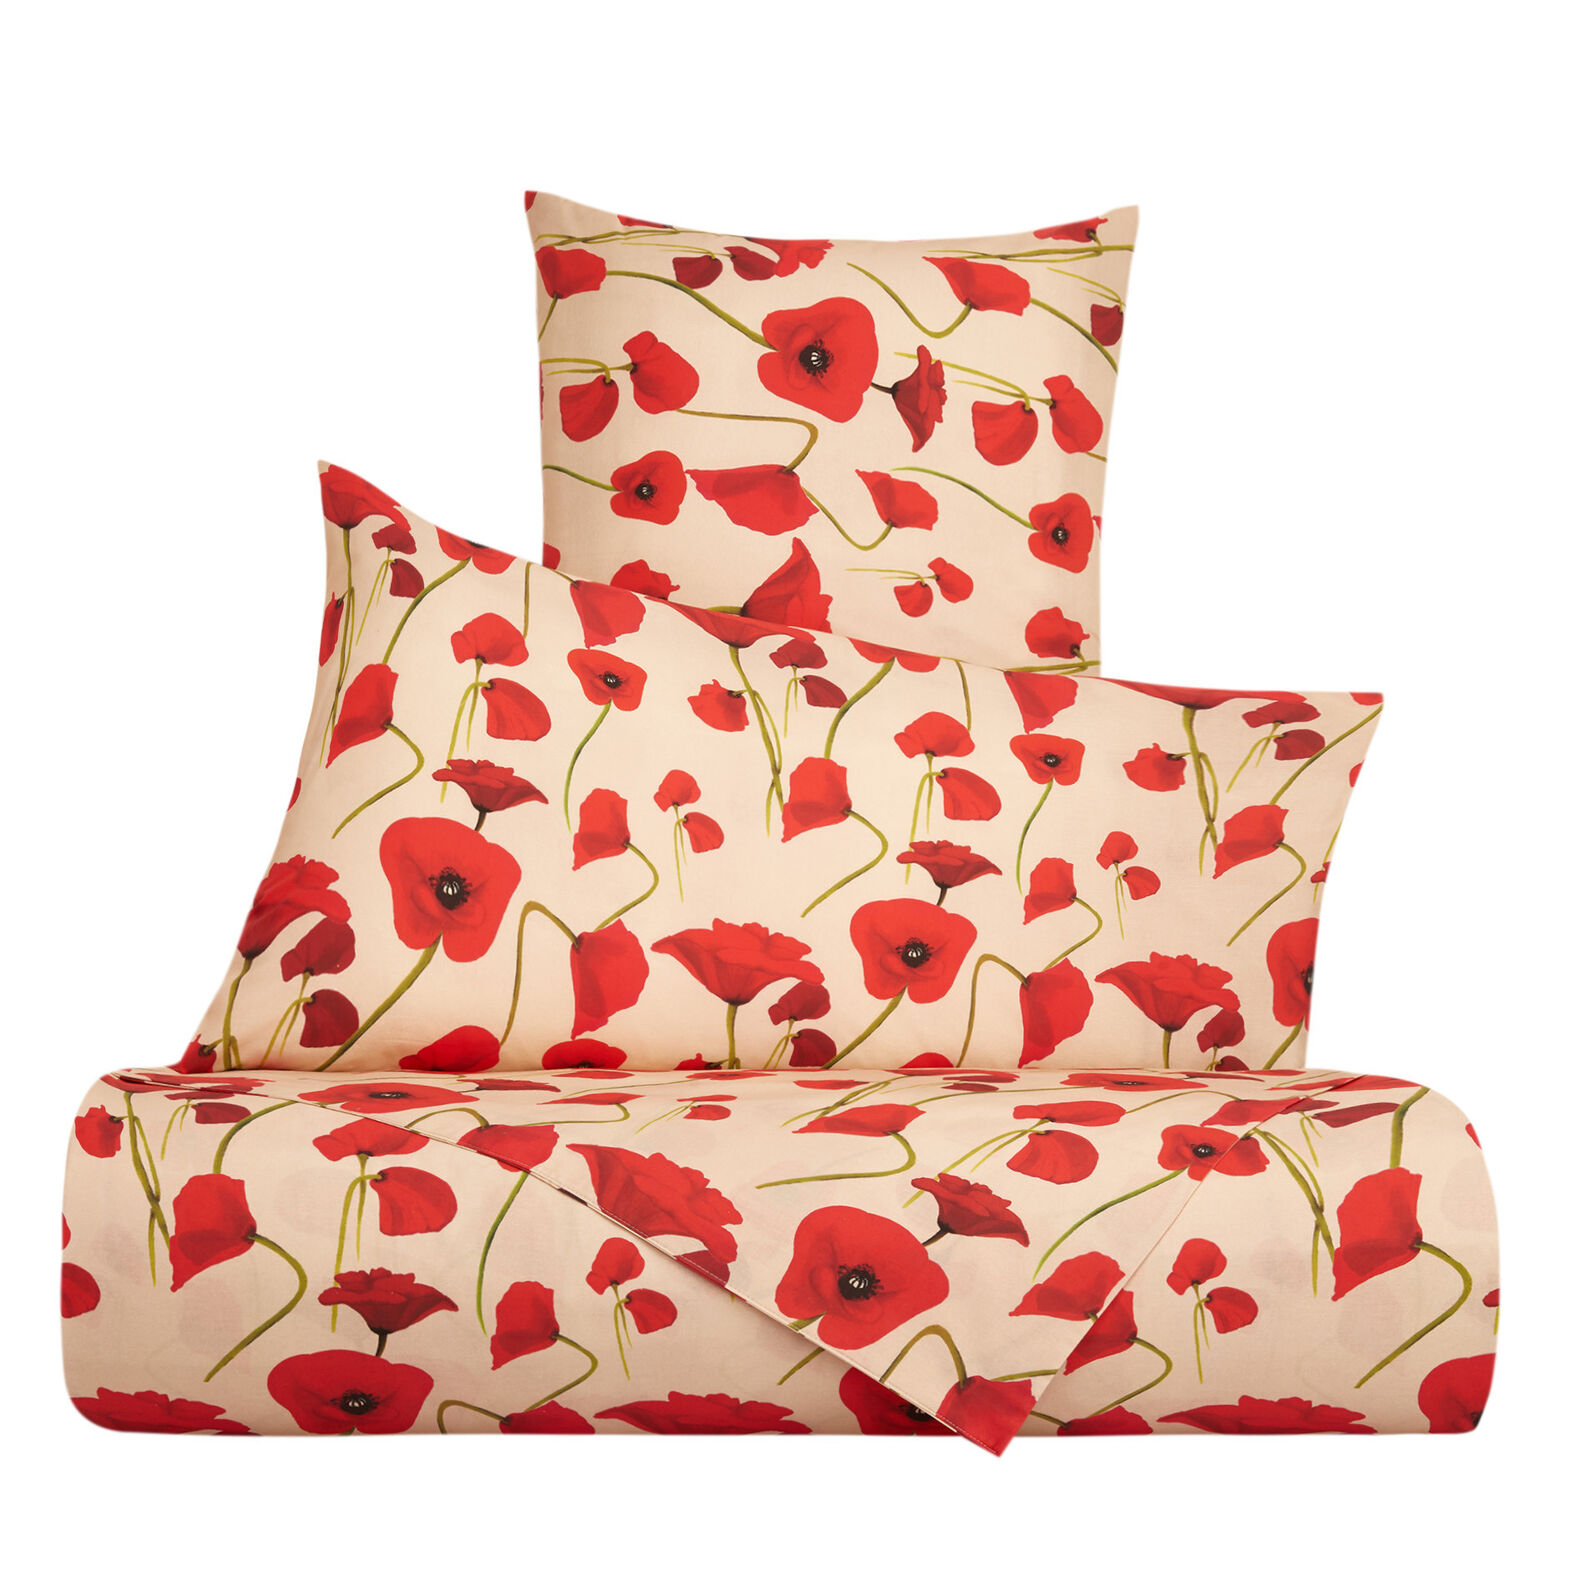 Flat sheet in cotton percale with poppy pattern